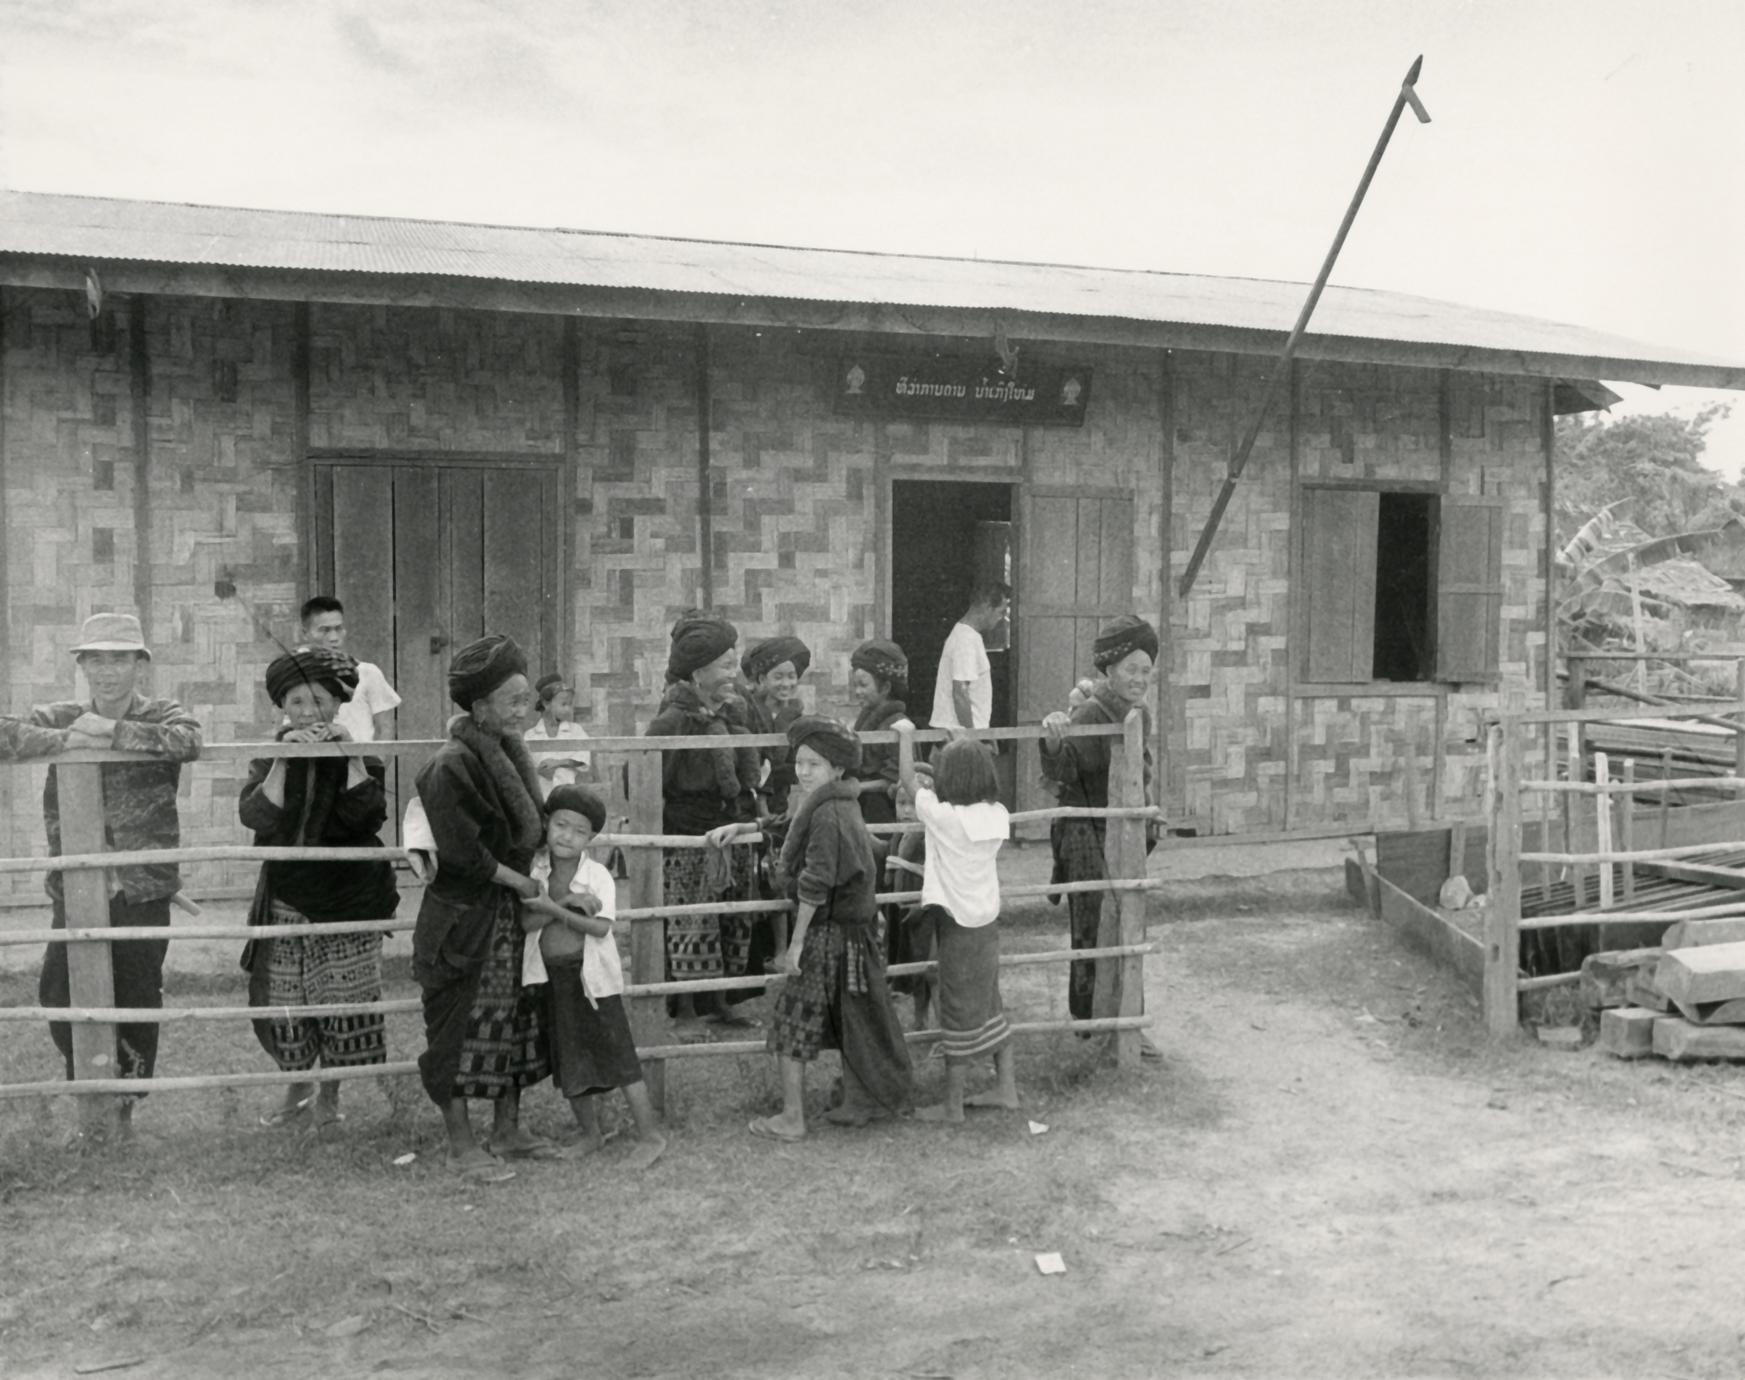 Yao (Iu Mien) villagers visit a local dispensary in Houa Khong Province